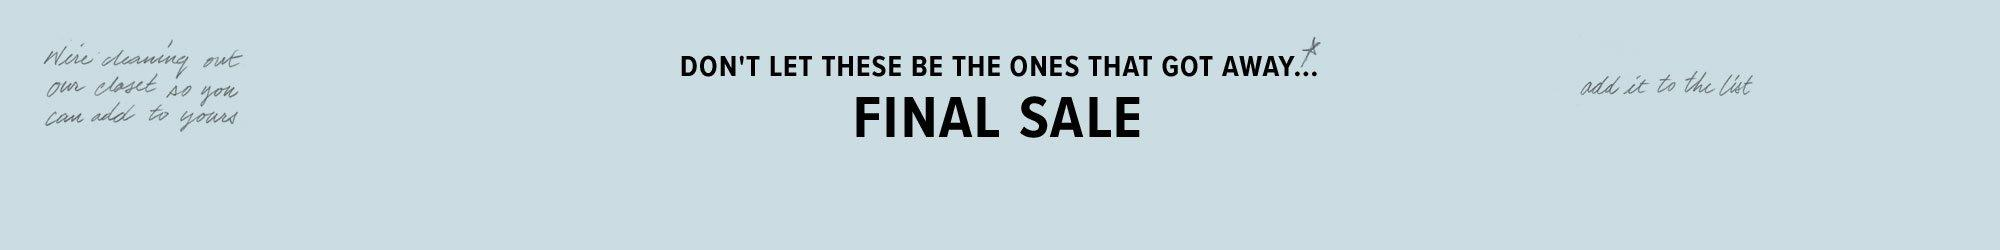 don't let these be the ones that got away...final sale